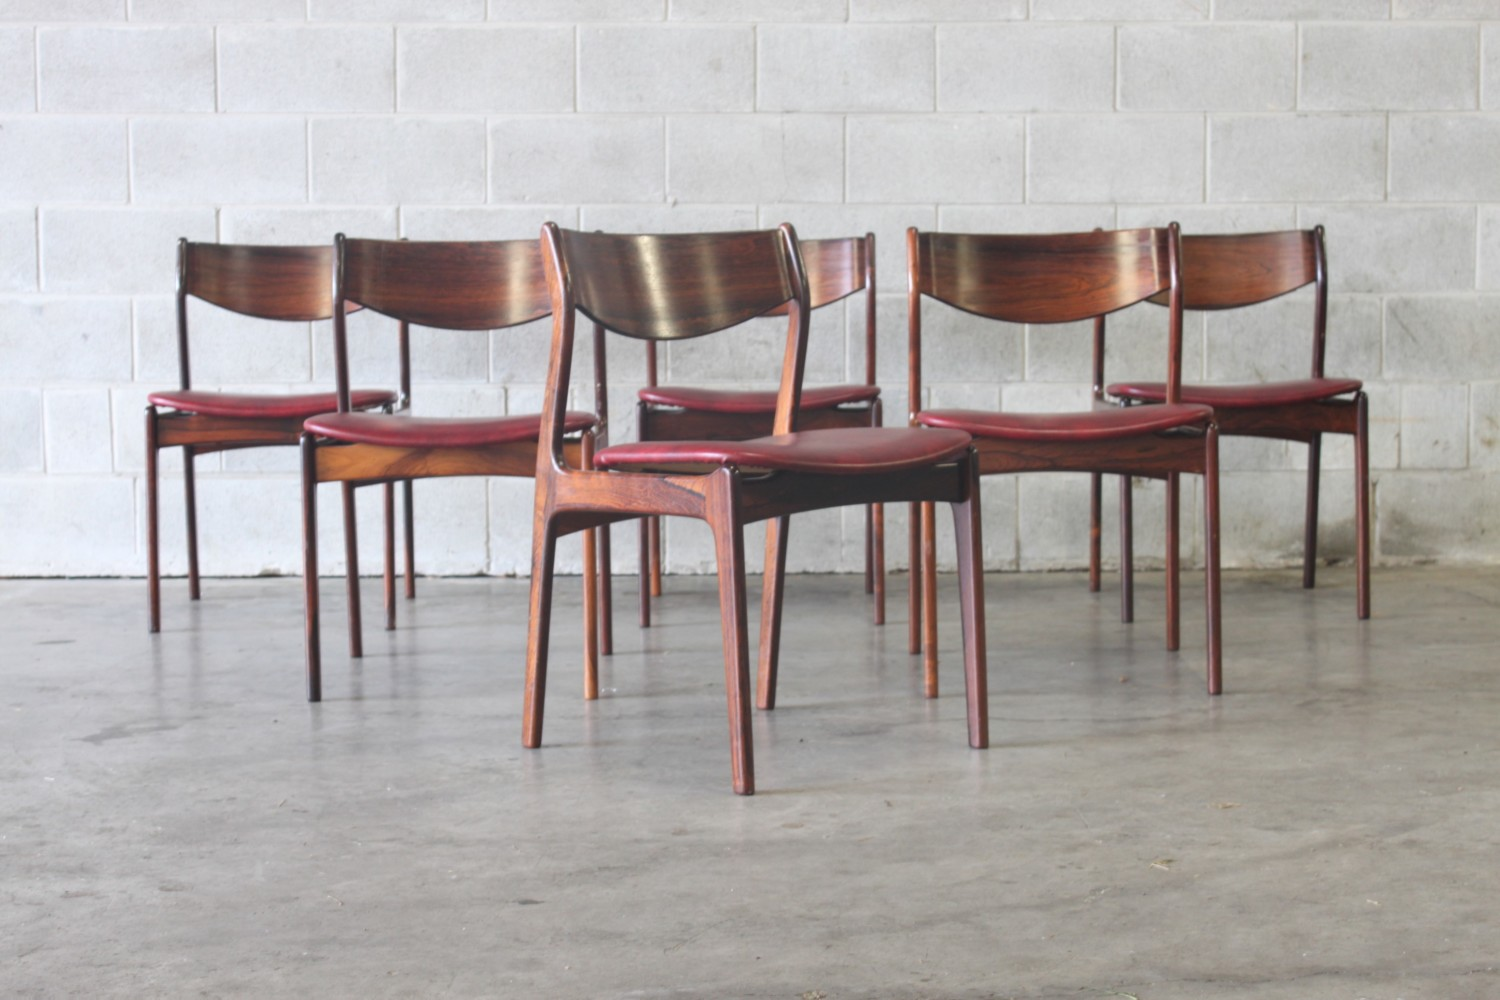 Rosewood Dining Chairs by PE Jorgensen